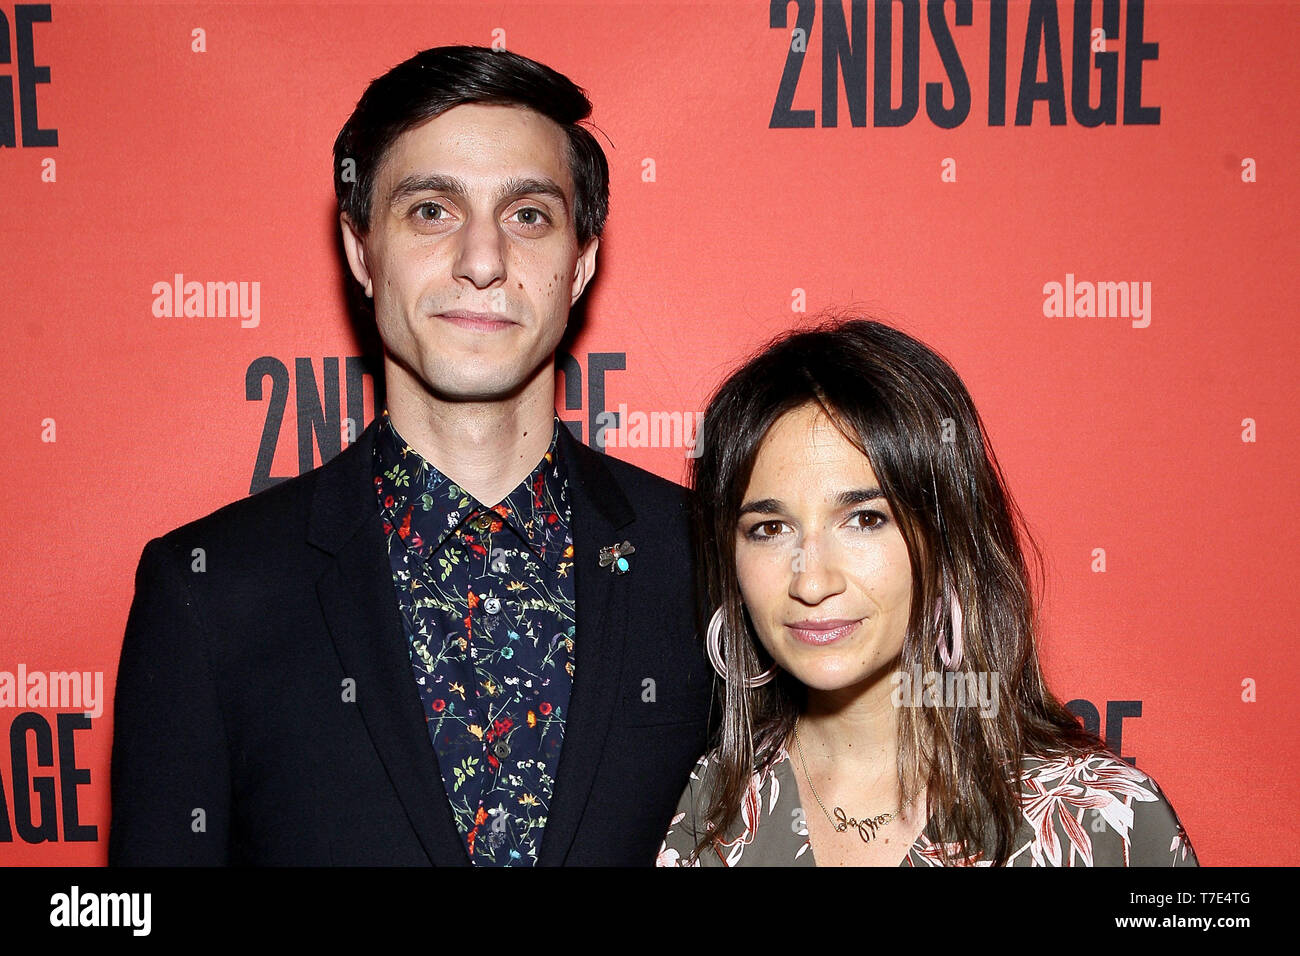 New York, USA. 6 May, 2019. Gideon Glick, Sas Goldberg at the Second Stage 40th Birthday Gala at The Hammerstein Ballroom. Credit: Steve Mack/Alamy Live News - Stock Image